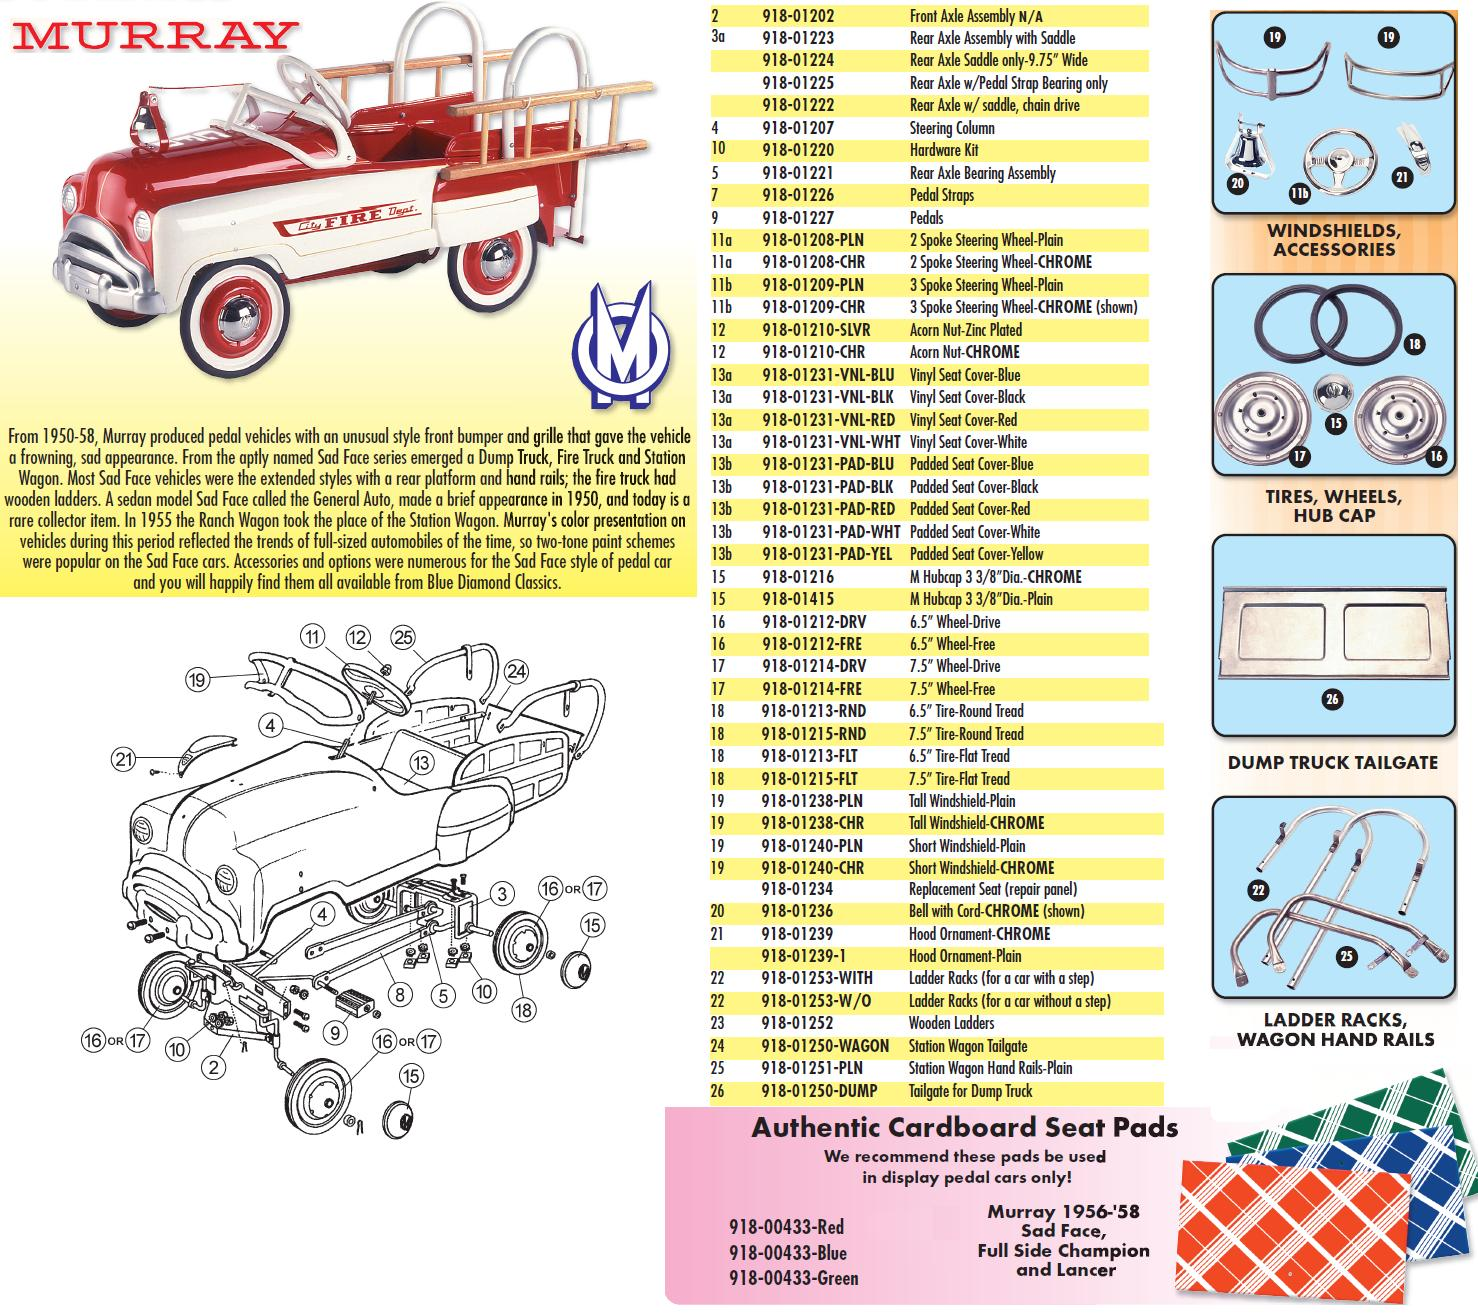 Pedal Car Parts 7 1 2 Inch Tire Murray Select Wiring Diagram Exploded For Sad Face